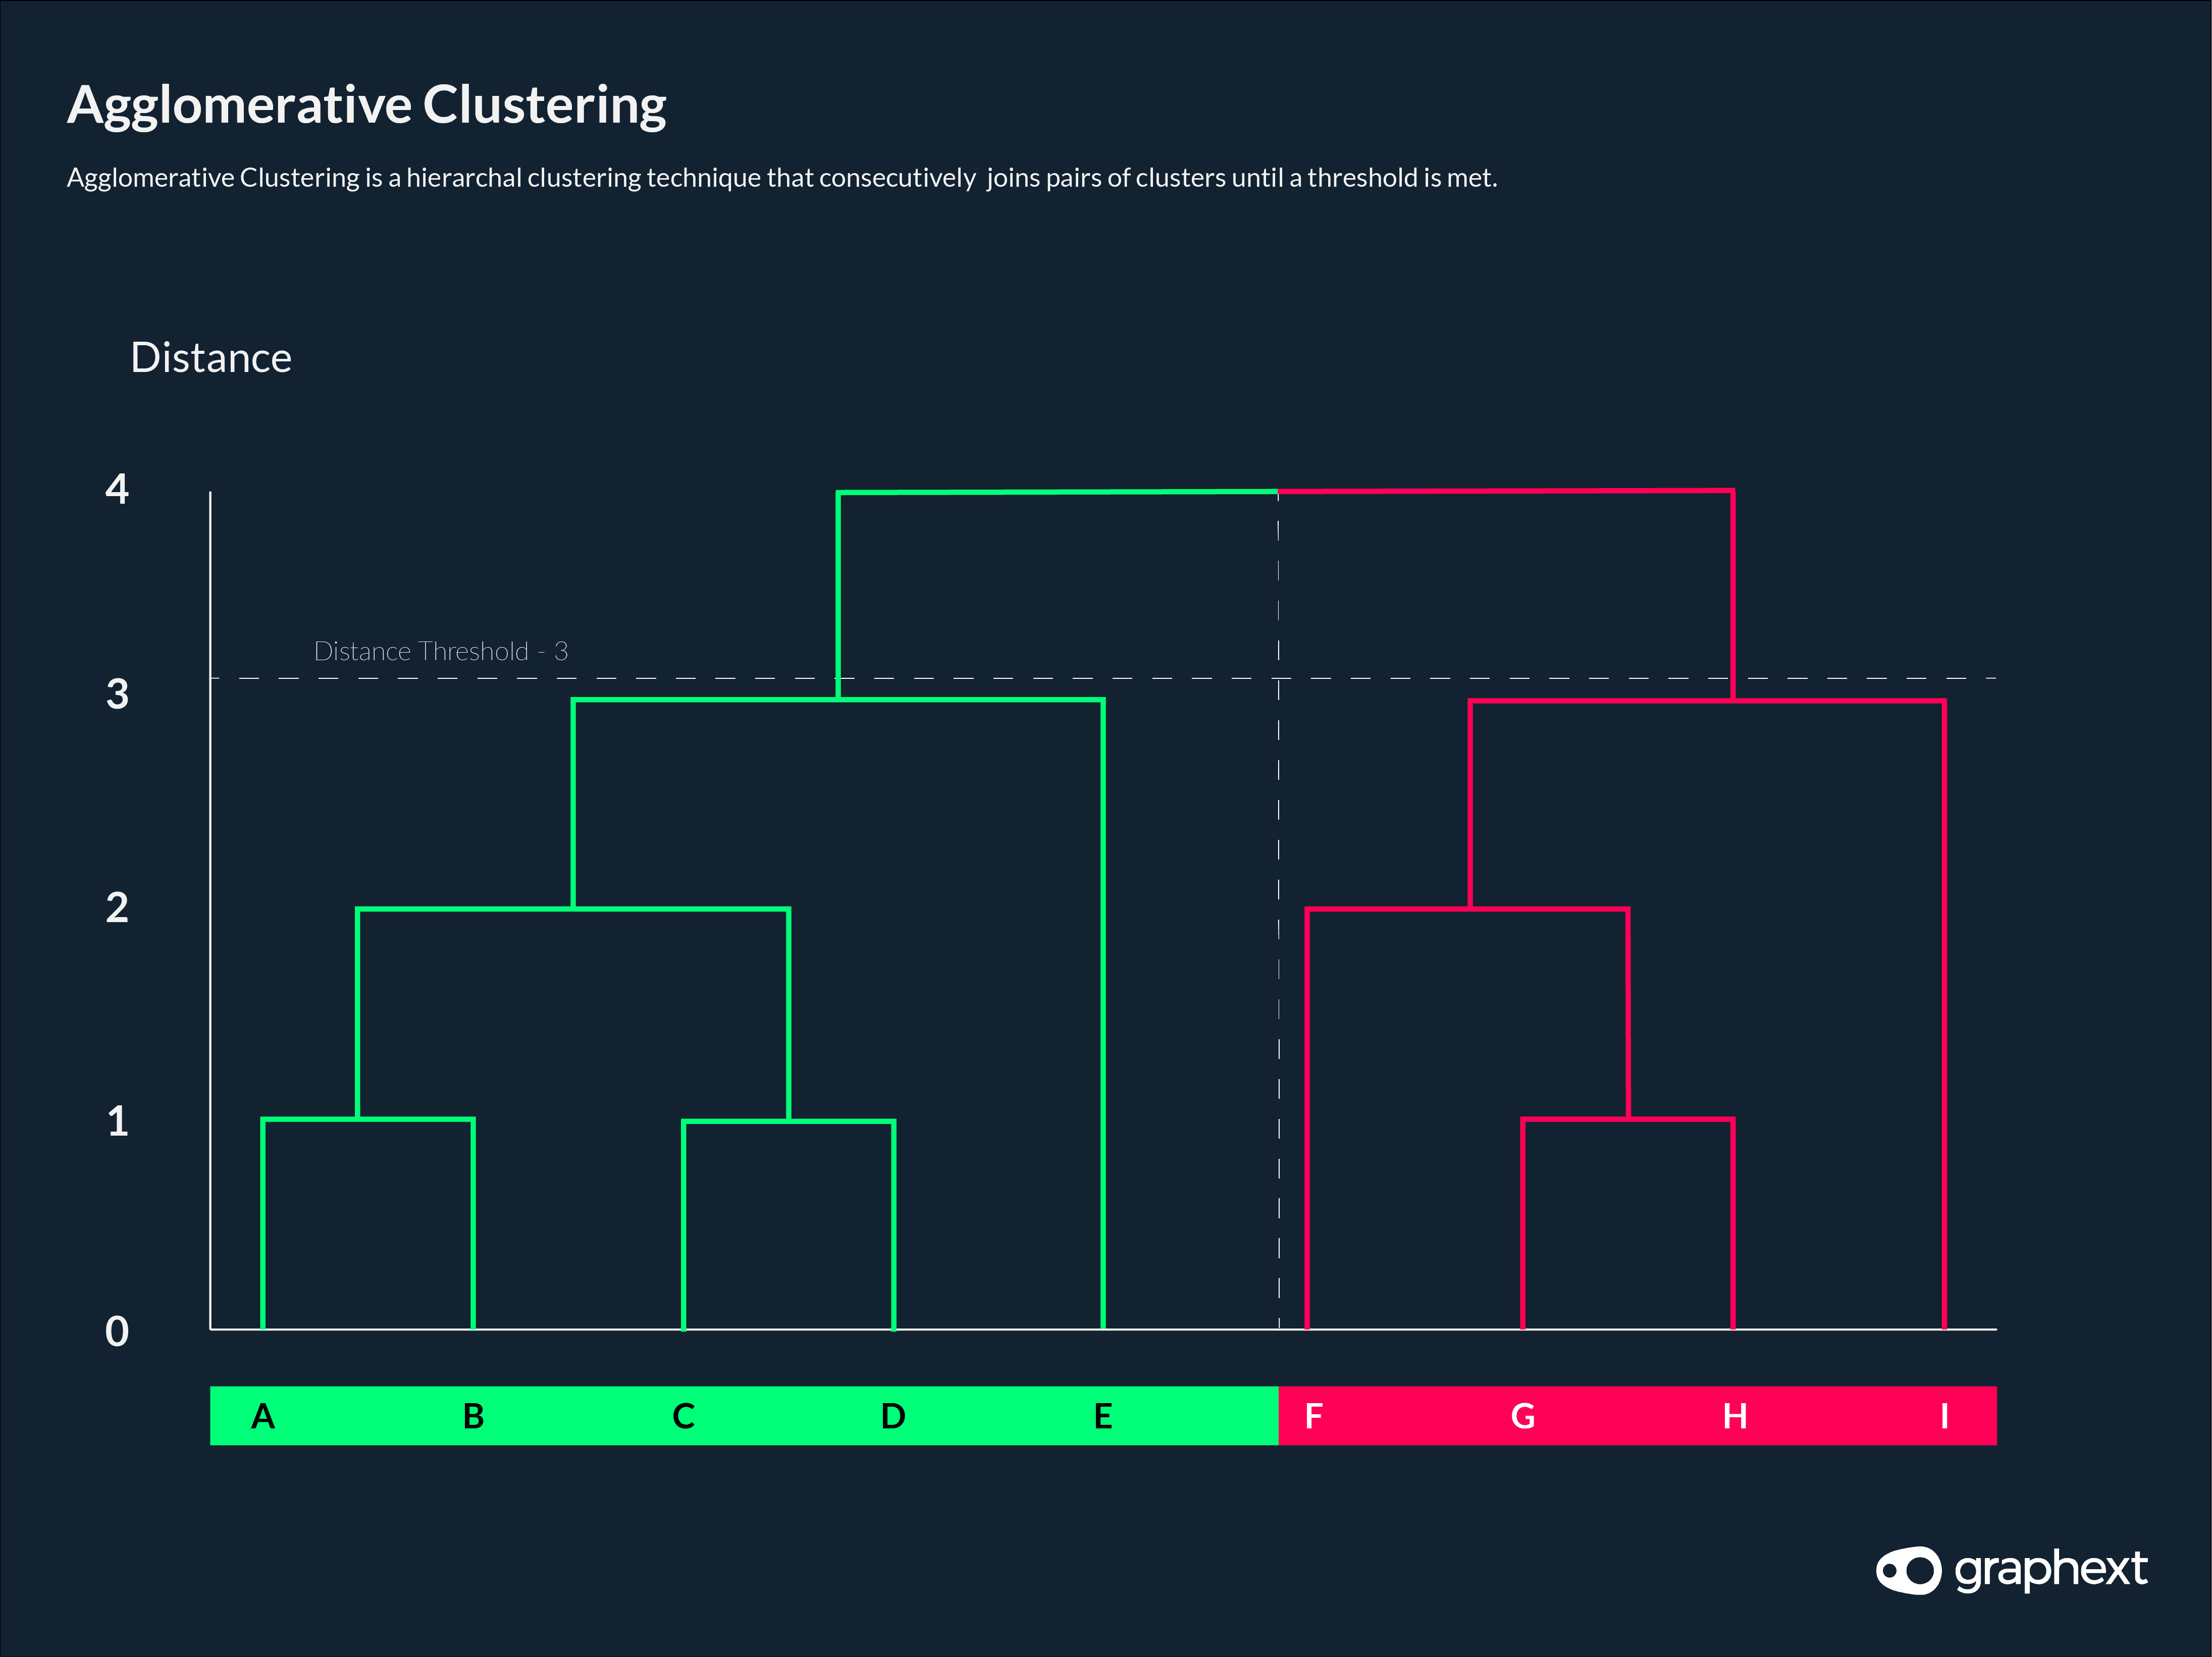 An infographic showing how agglomerative clustering is used to join pairs of clusters until a threshold is met.